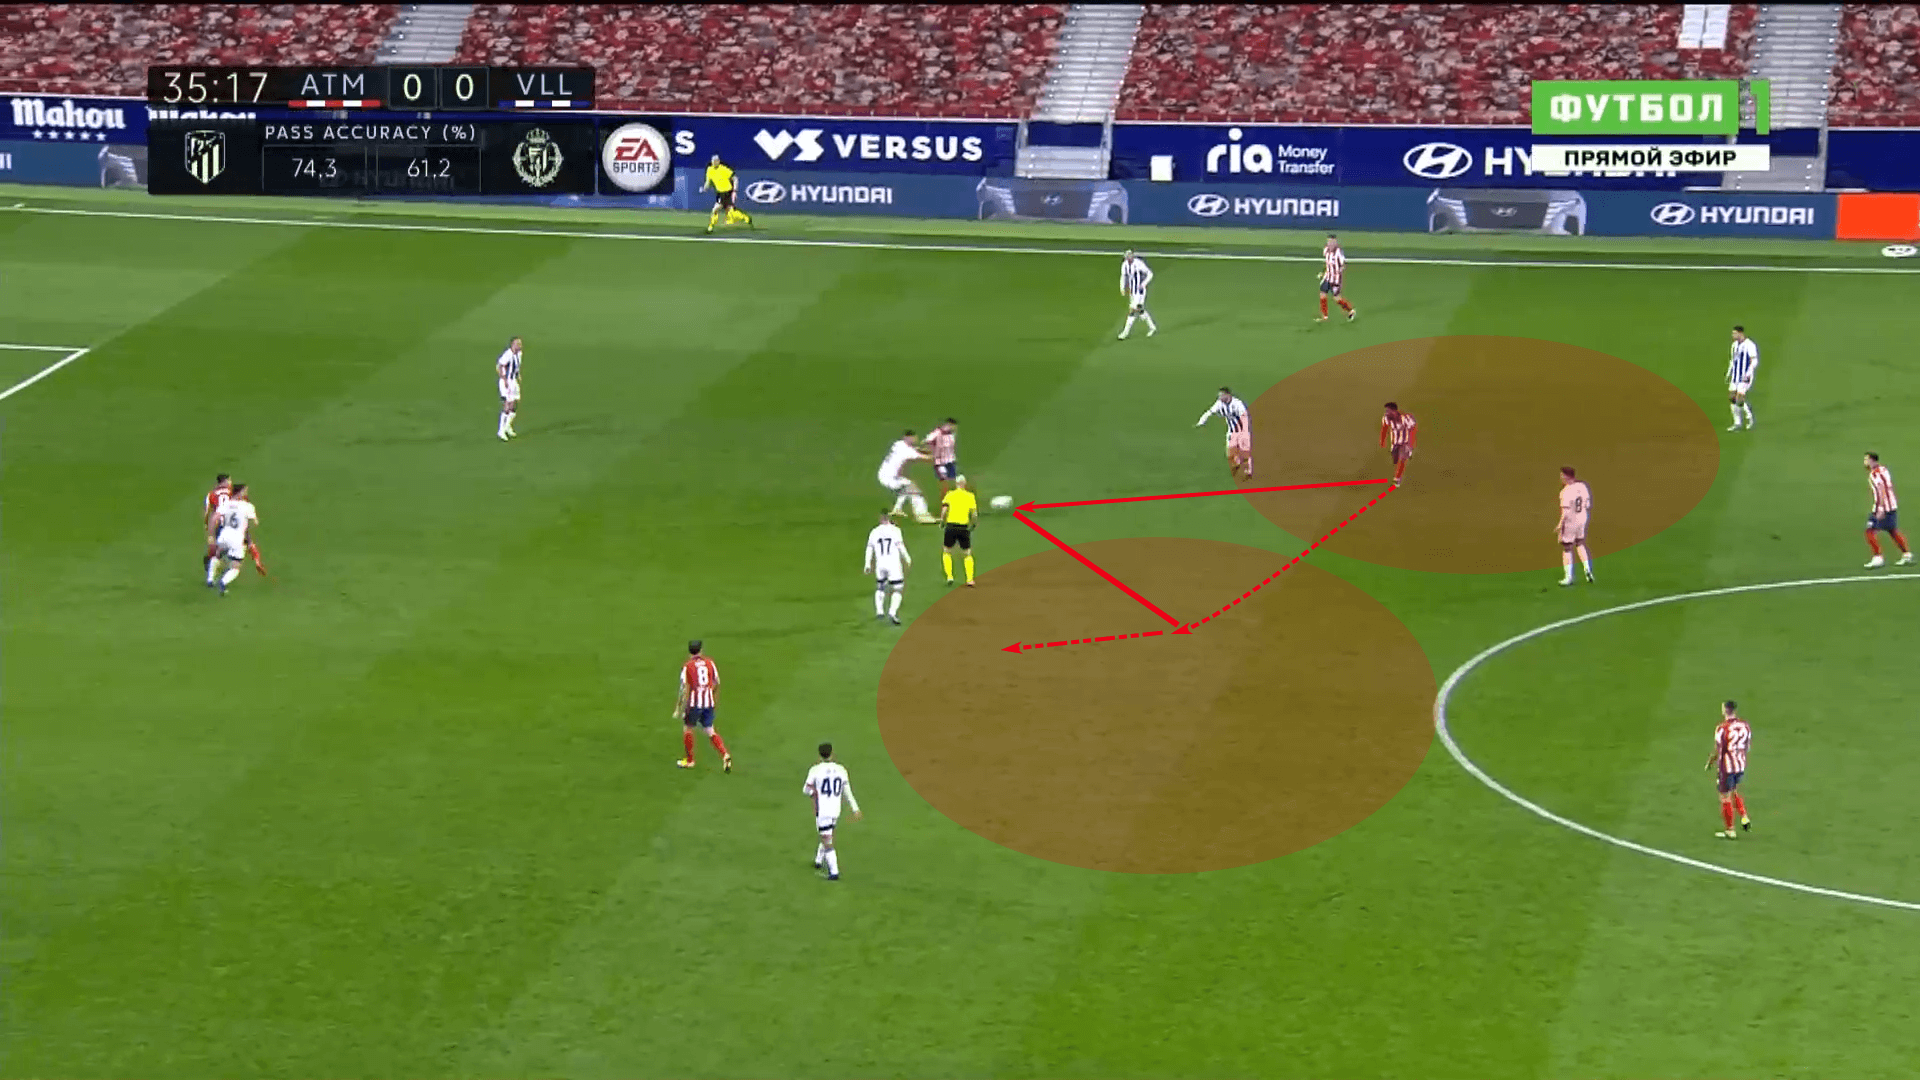 Decision Day La Liga 2020/21: Will Atletico Madrid or Real Madrid claim the title? – tactical preview